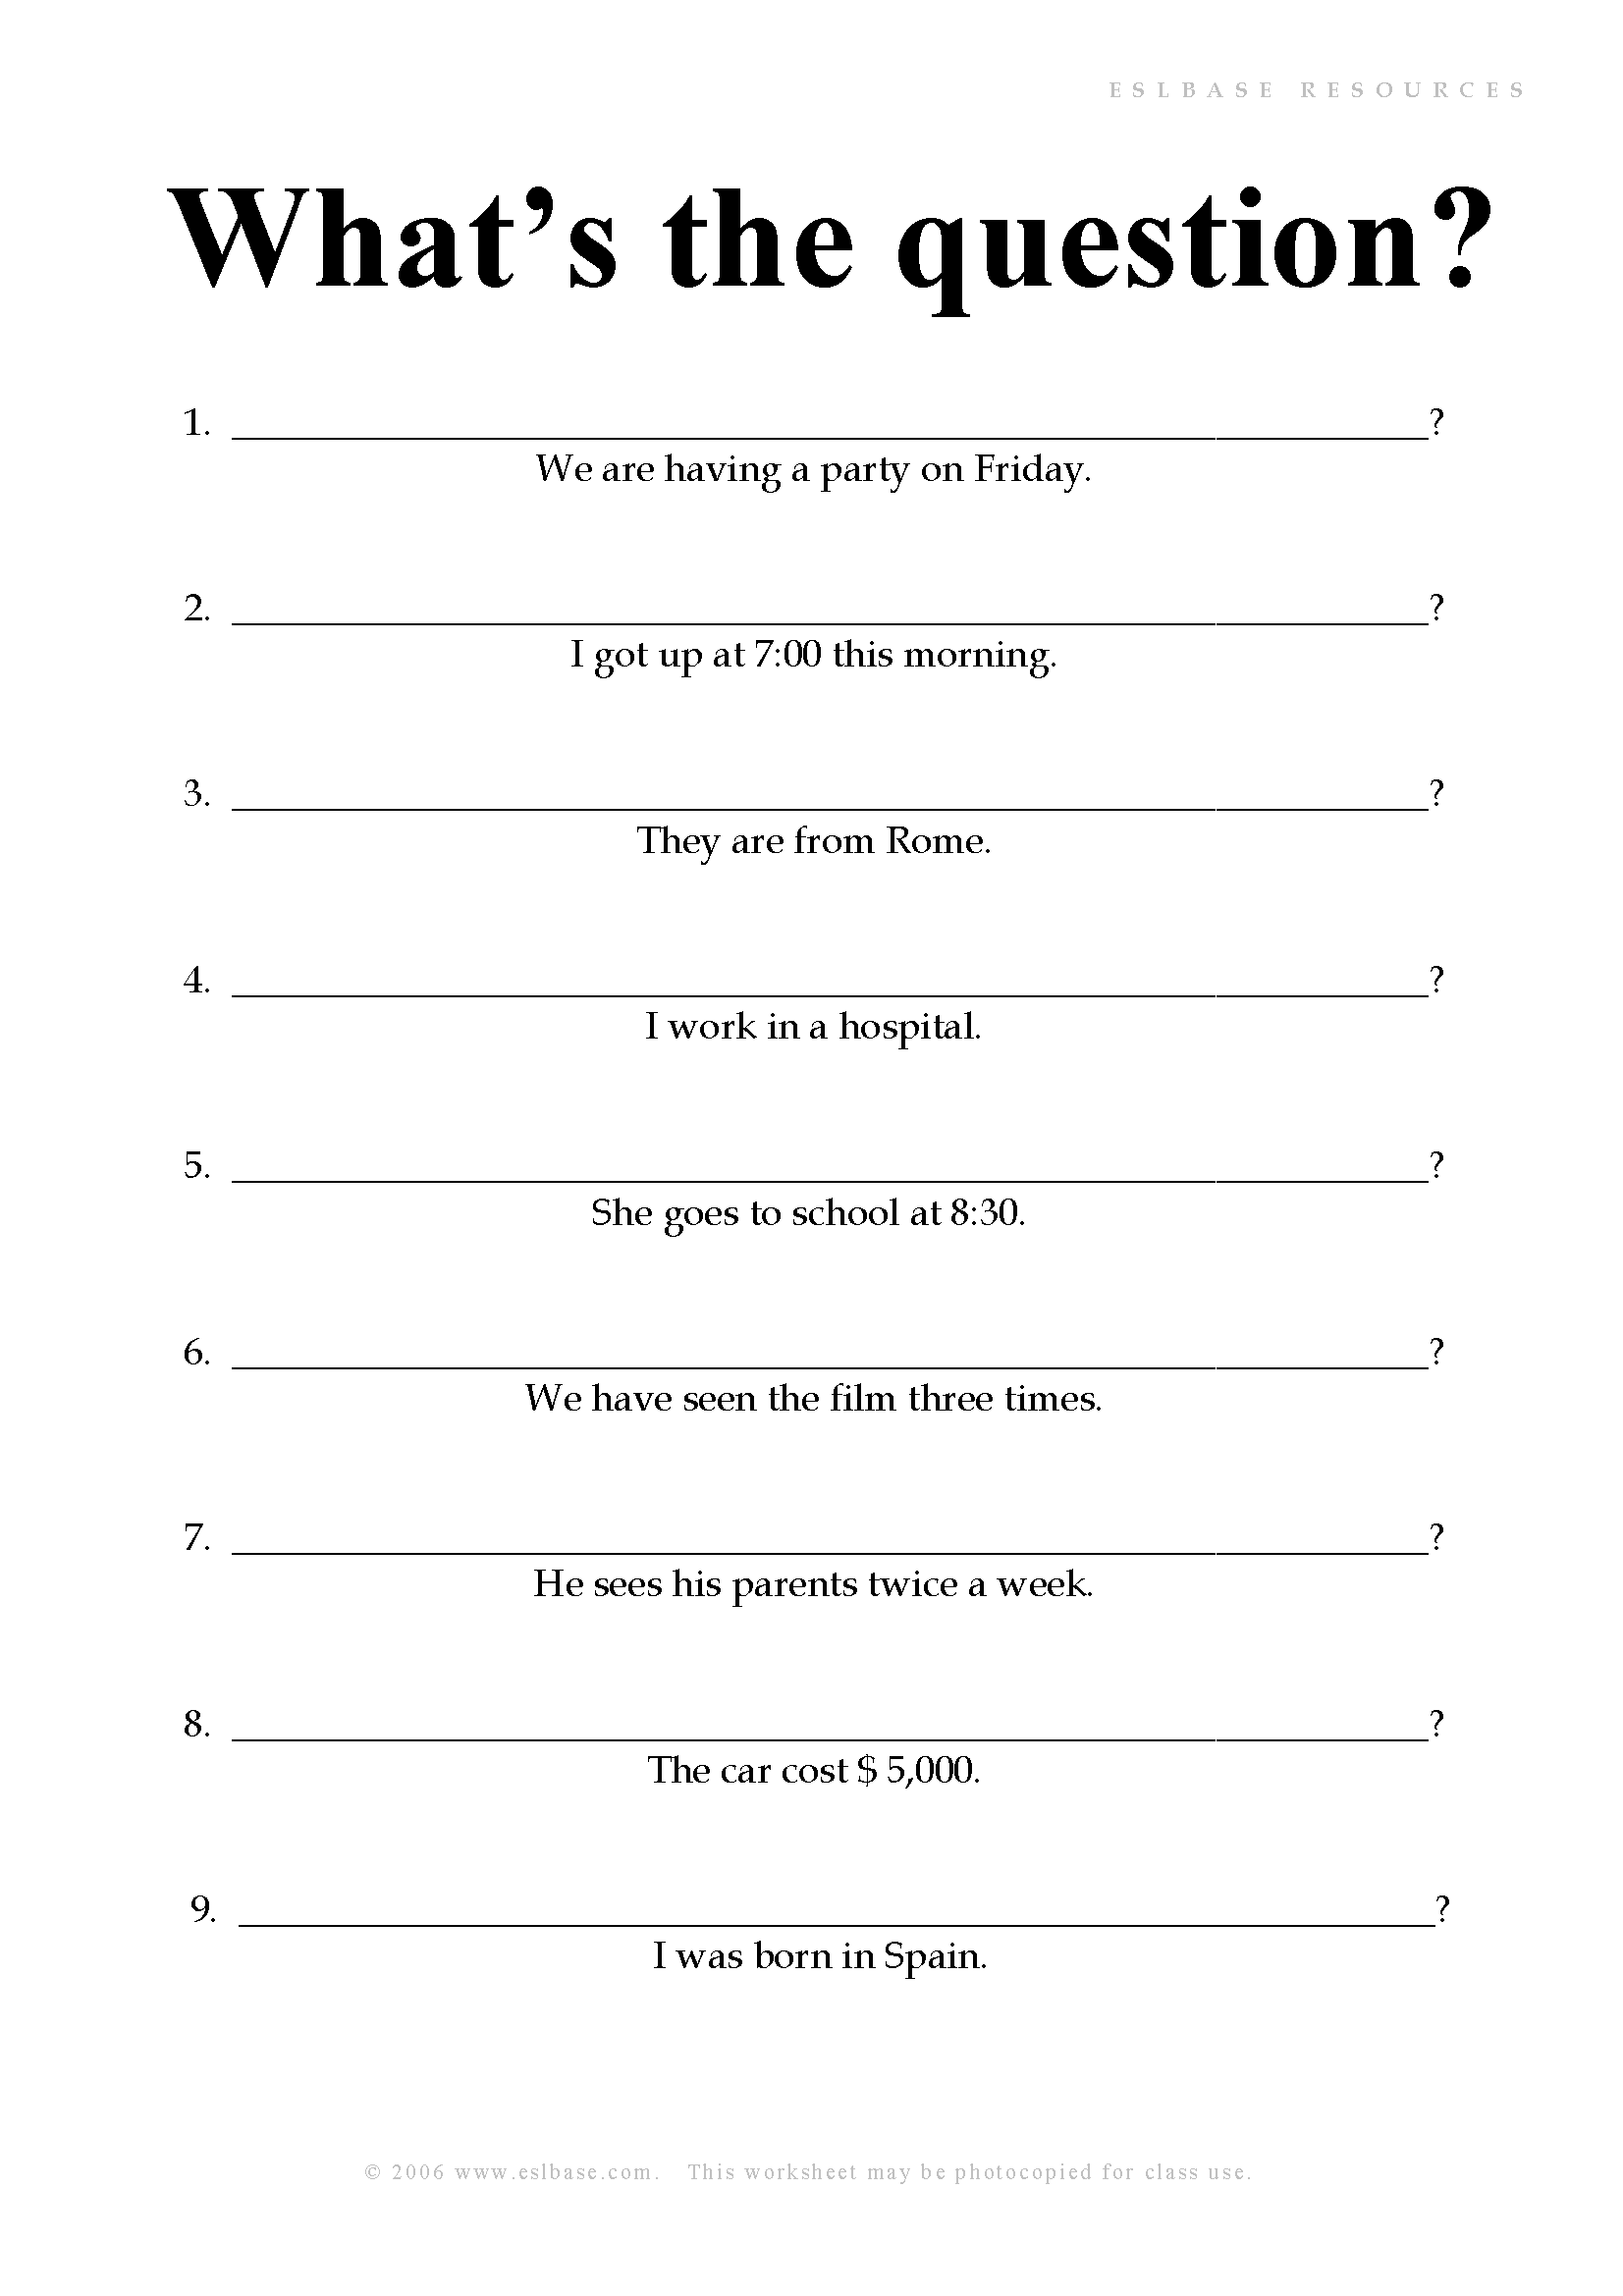 a worksheet to practise forming questions | Notebooks | Pinterest